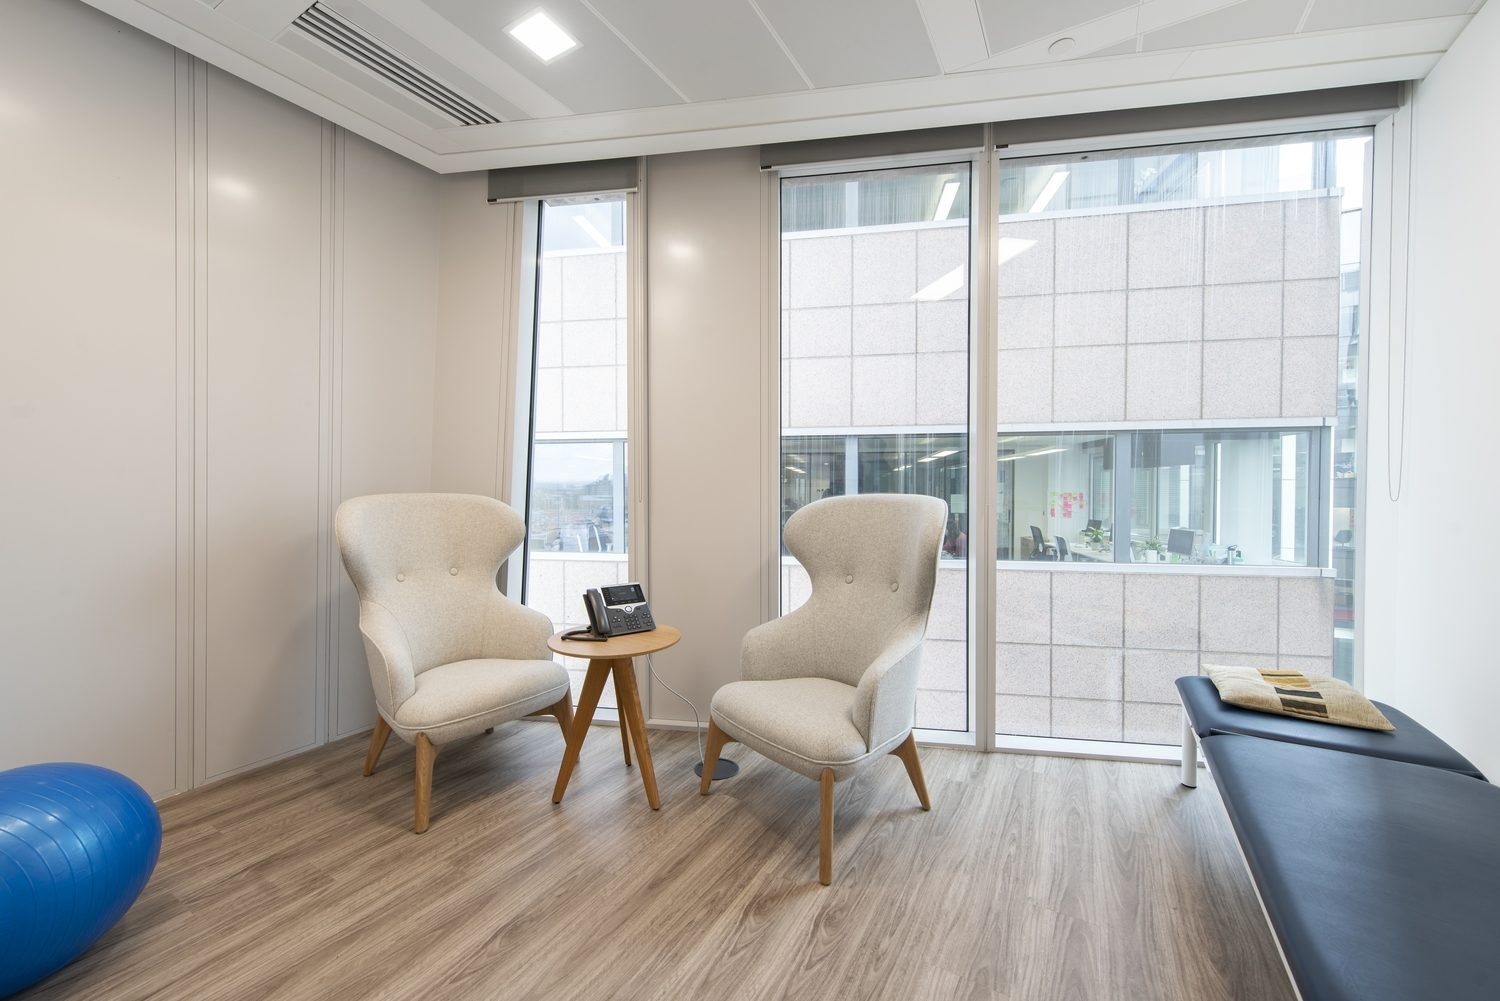 Compass Lexecon office wellbeing design